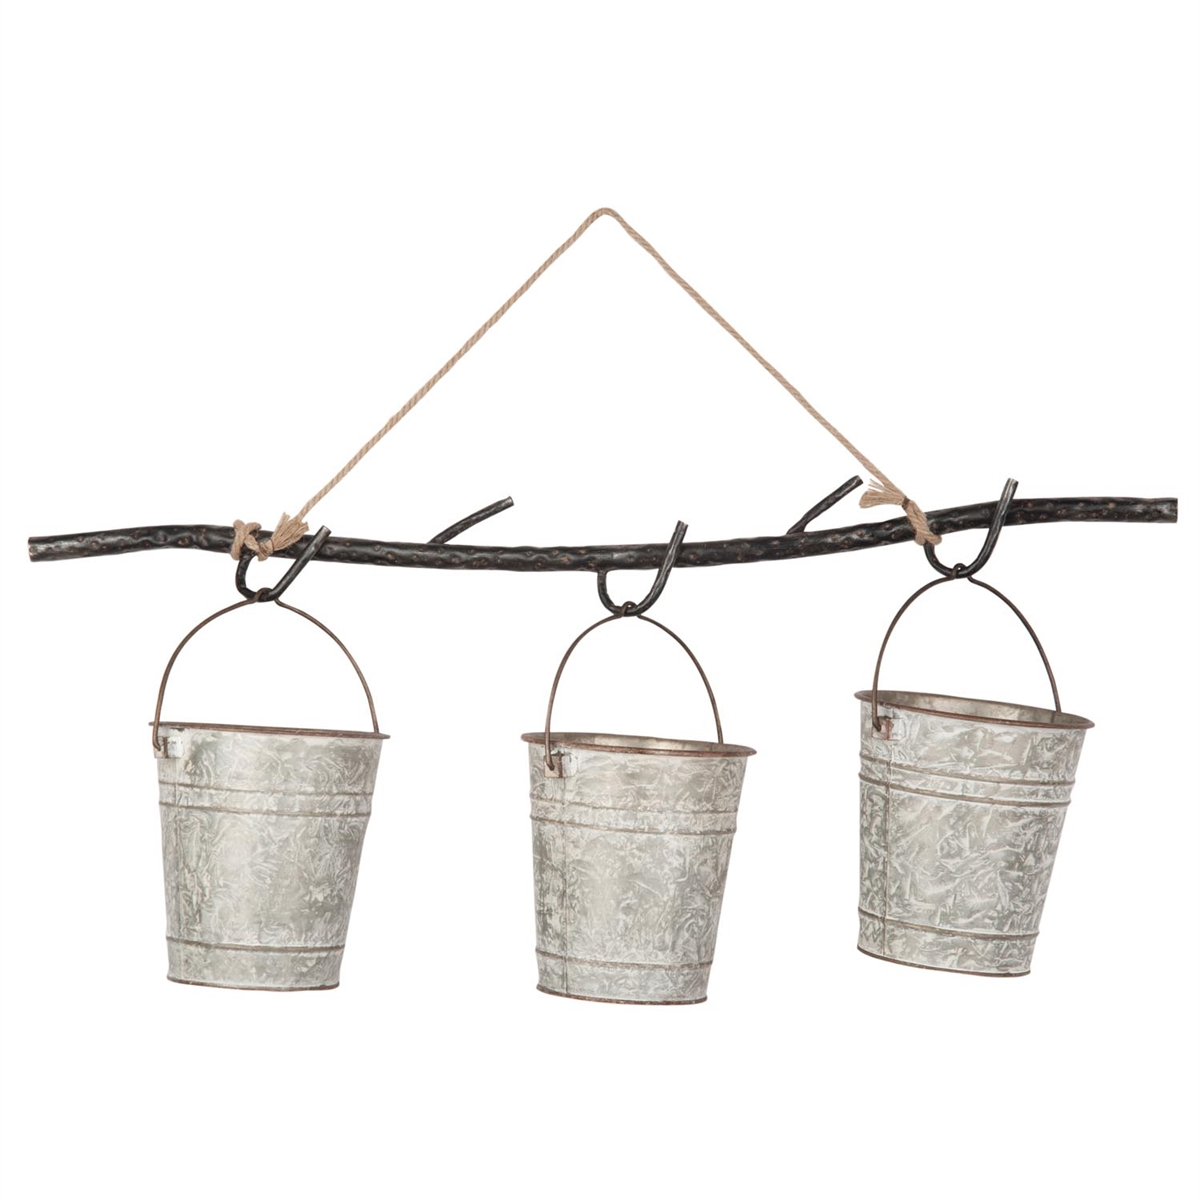 Delany Hanging 3 Bucket Planter